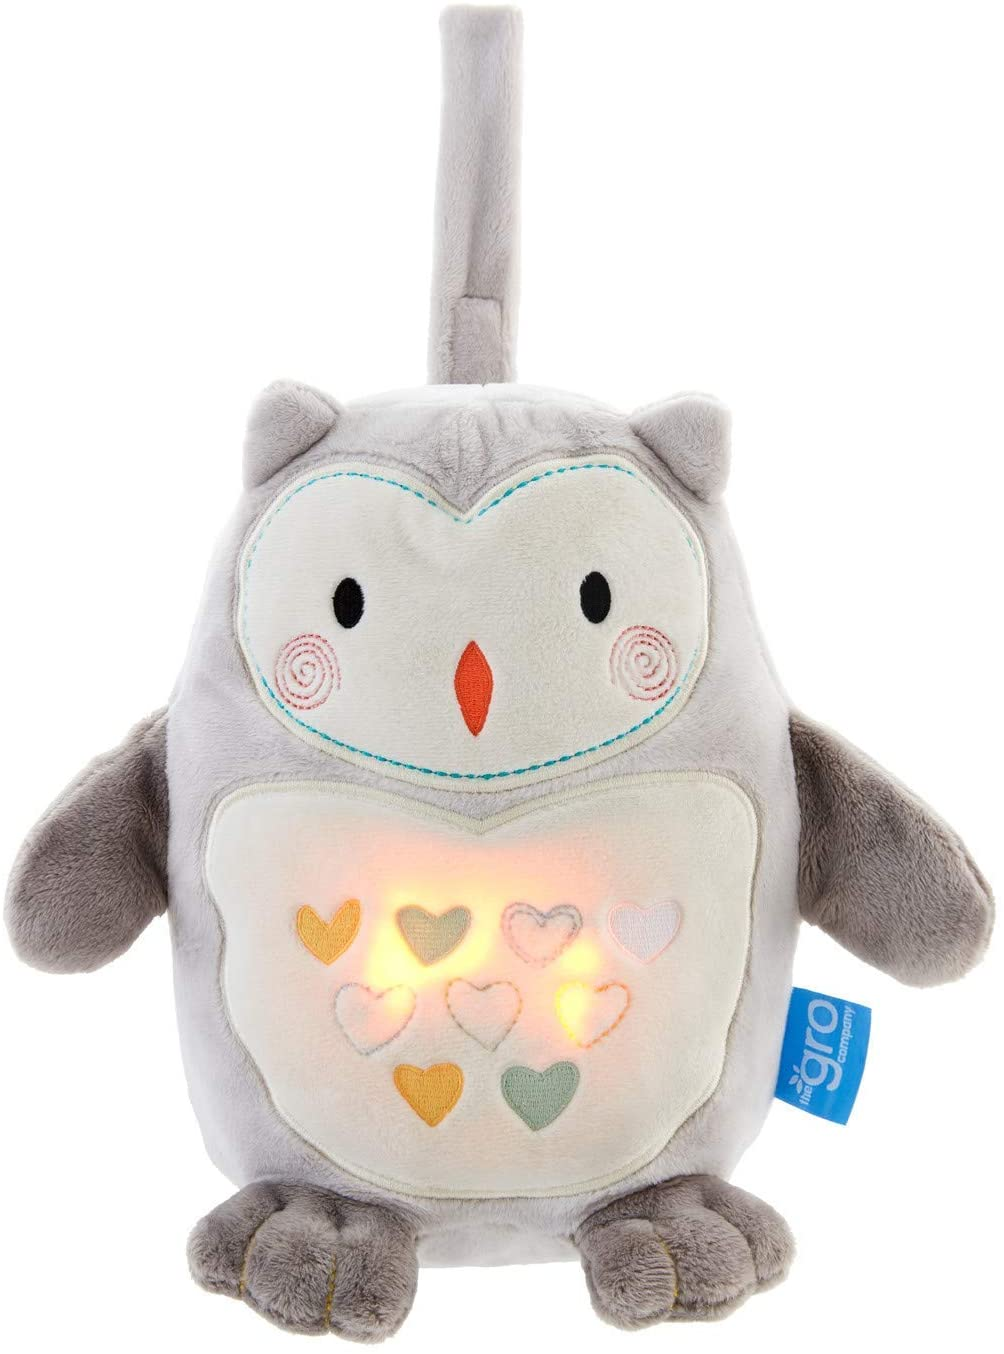 The Gro Company's Ollies the Owl Grofriend soft toy.